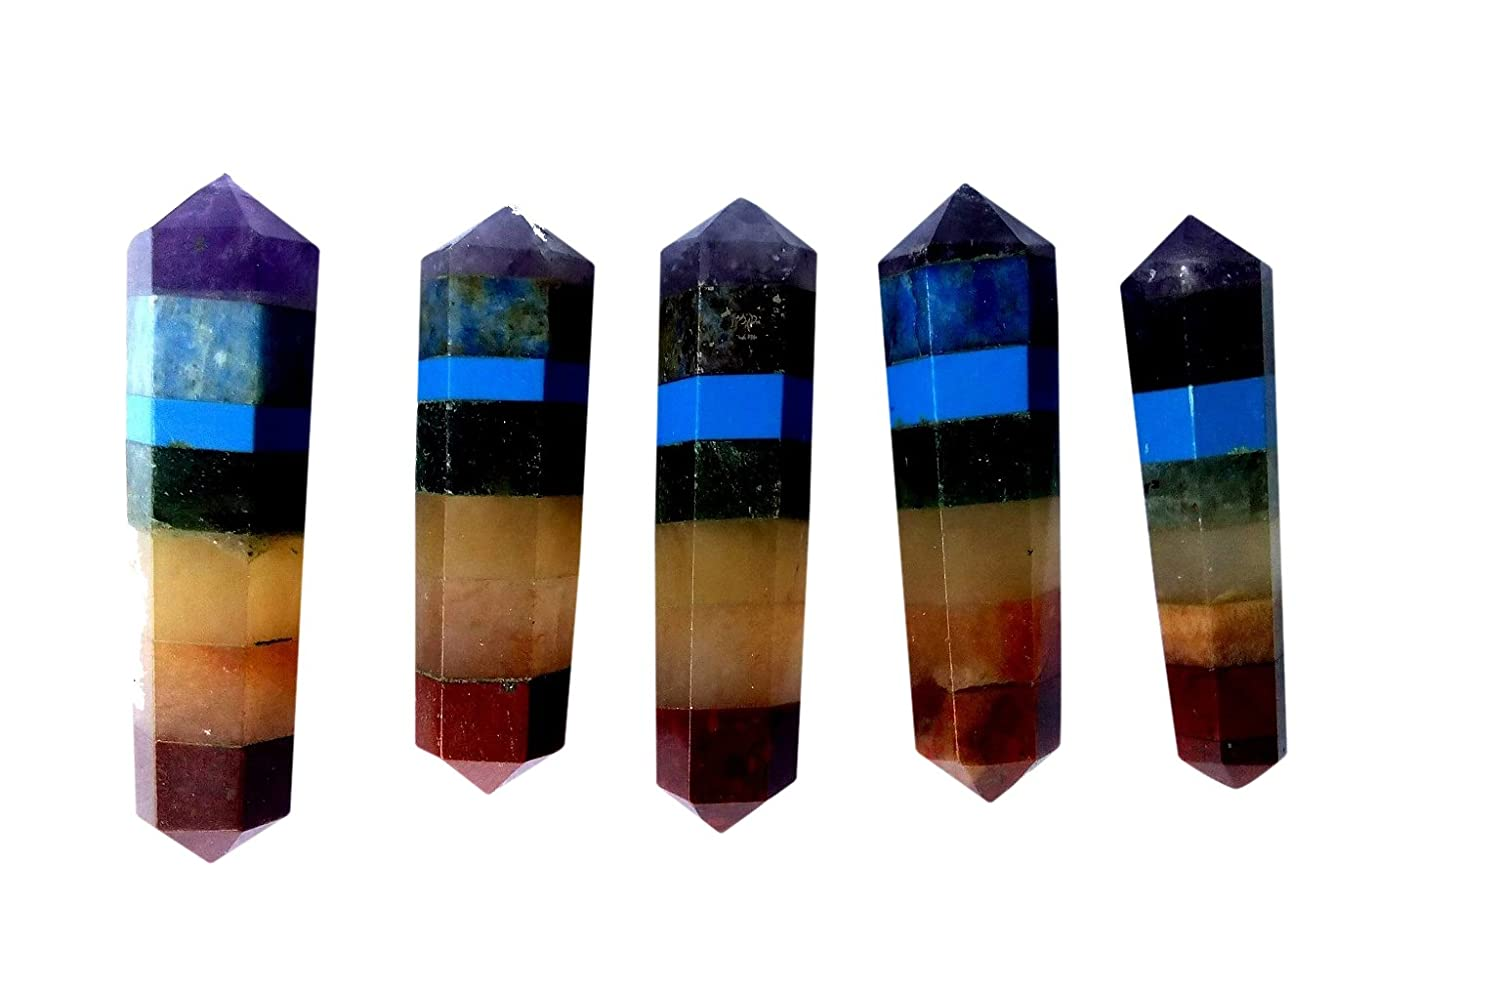 5 Pieces Double Terminated Chakra Crystal Healing Grid Points in Gift Pouch Perfect for Jewelry Making Necklace Wire Wrapping Pendants WholesaleGemShop WSGS-1212